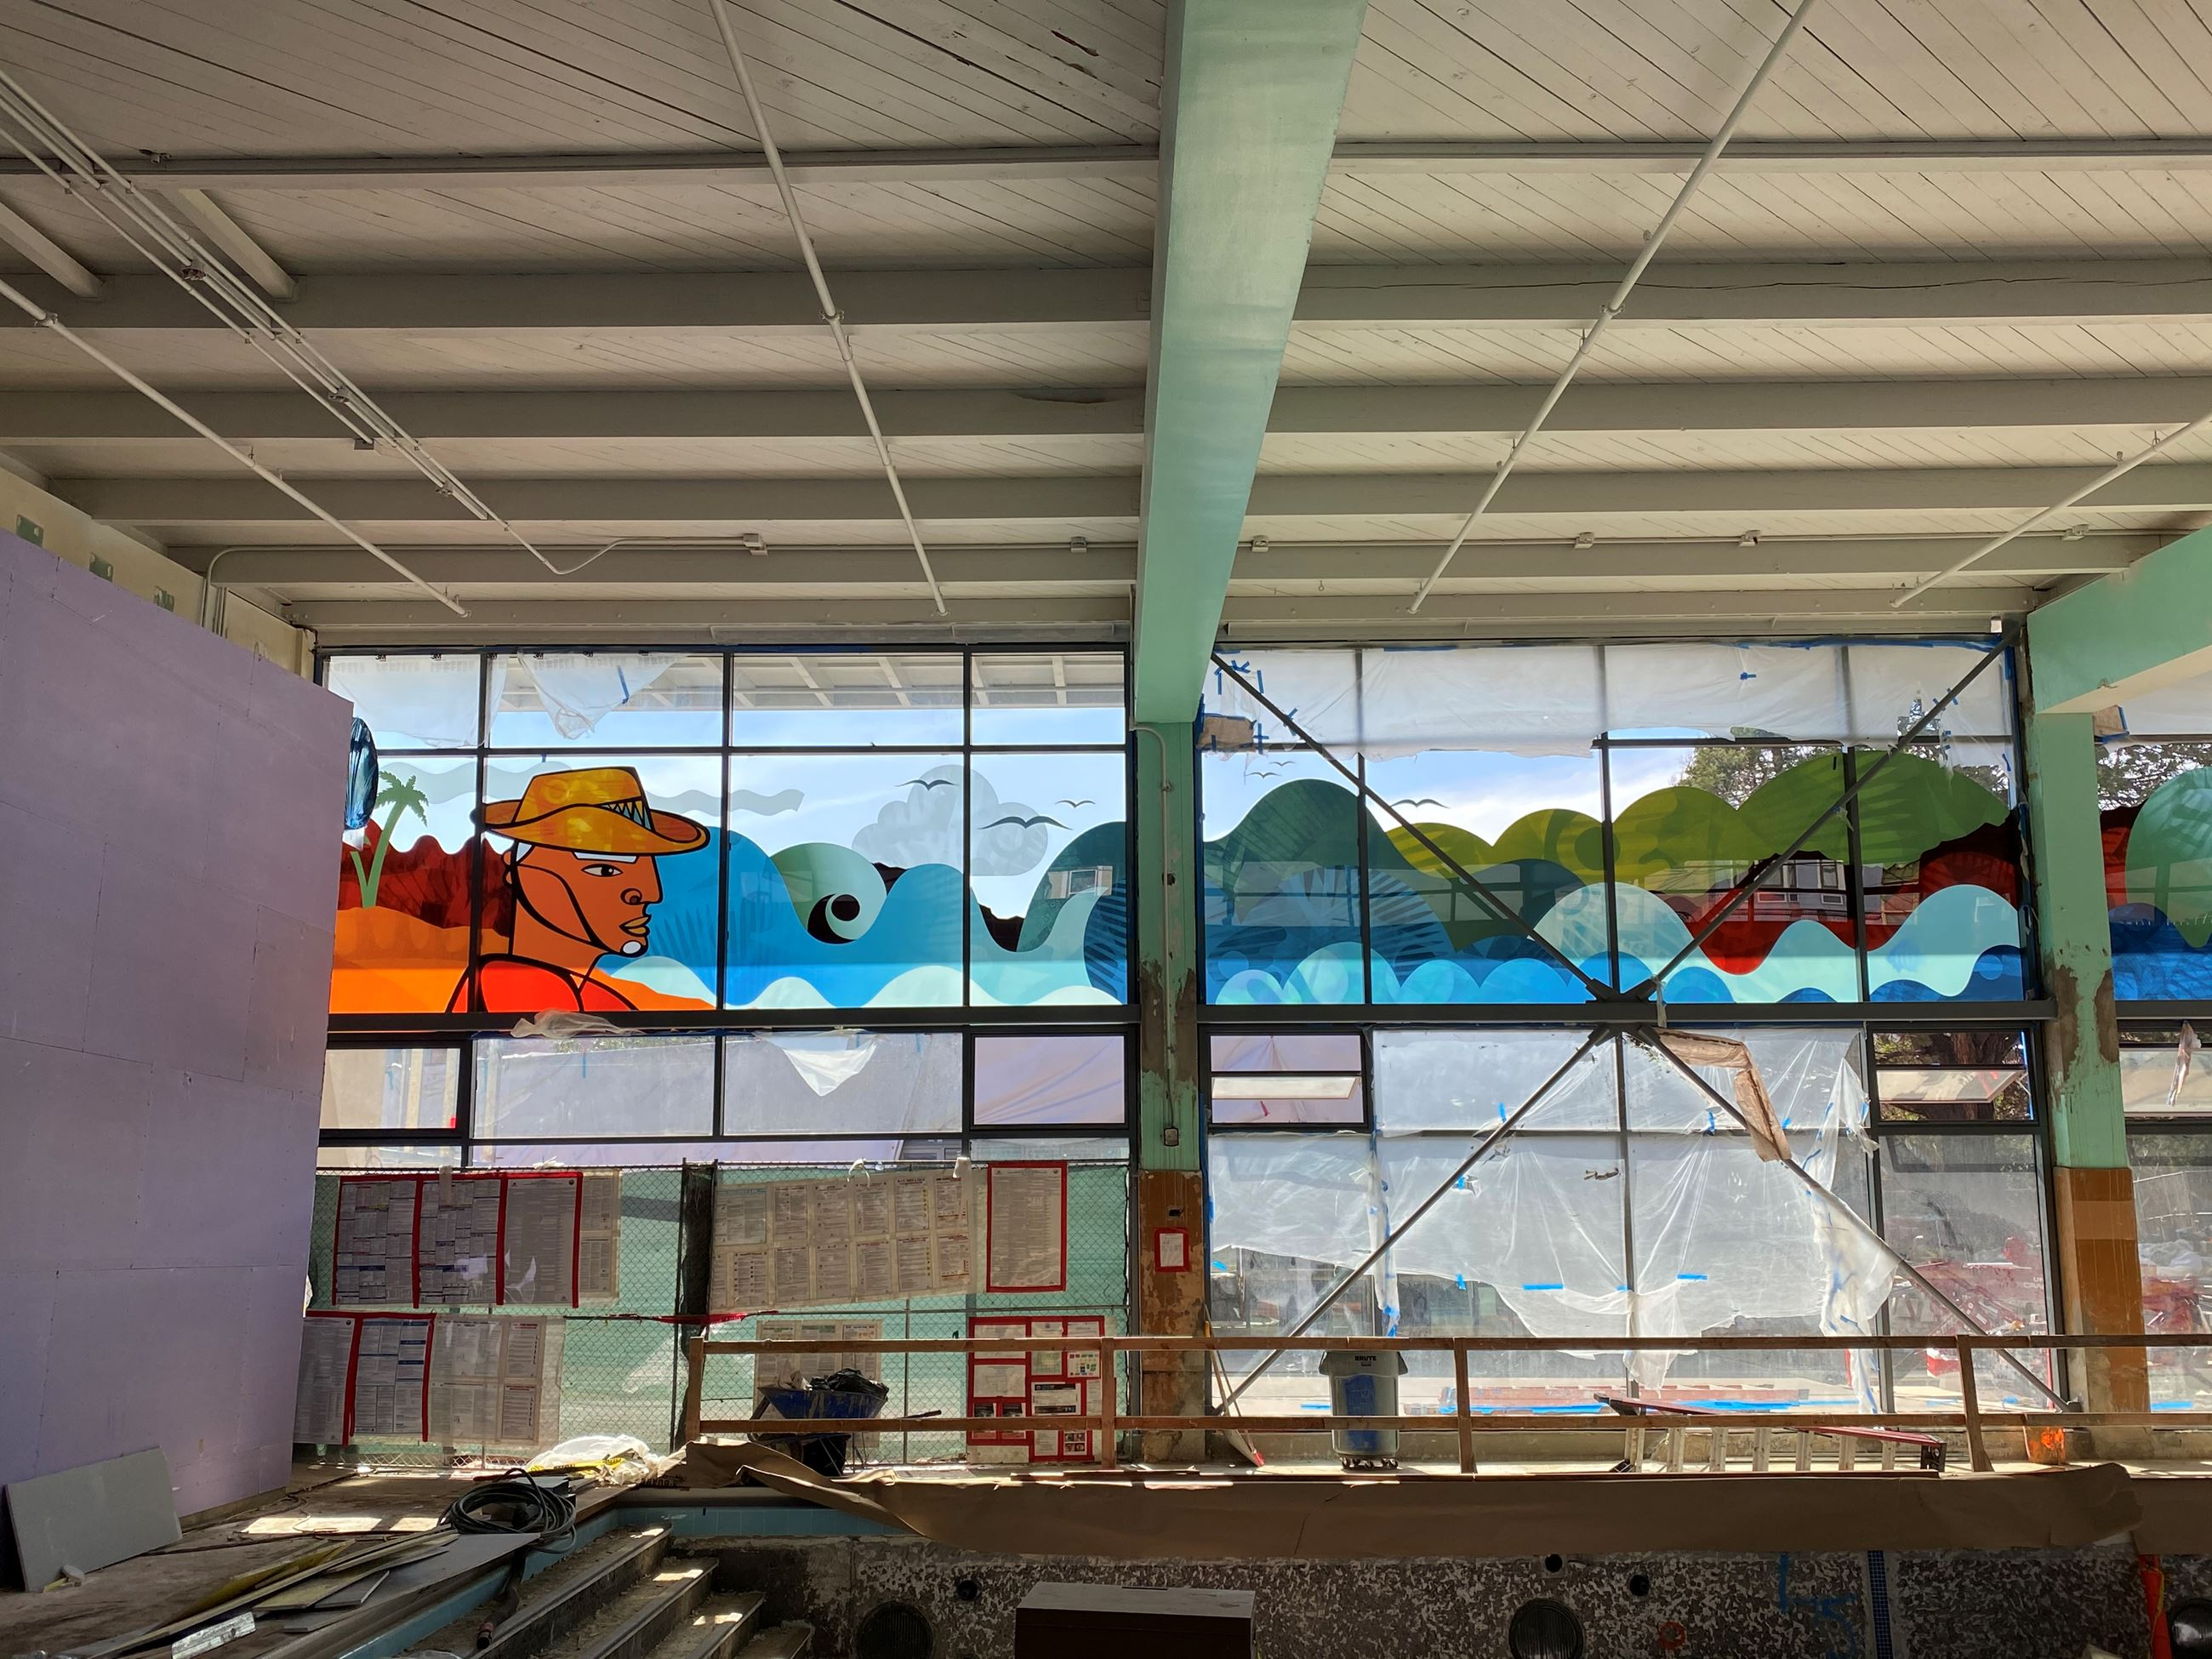 Image is taken from the inside of the Garfiled pool building showing newly installed windows with a